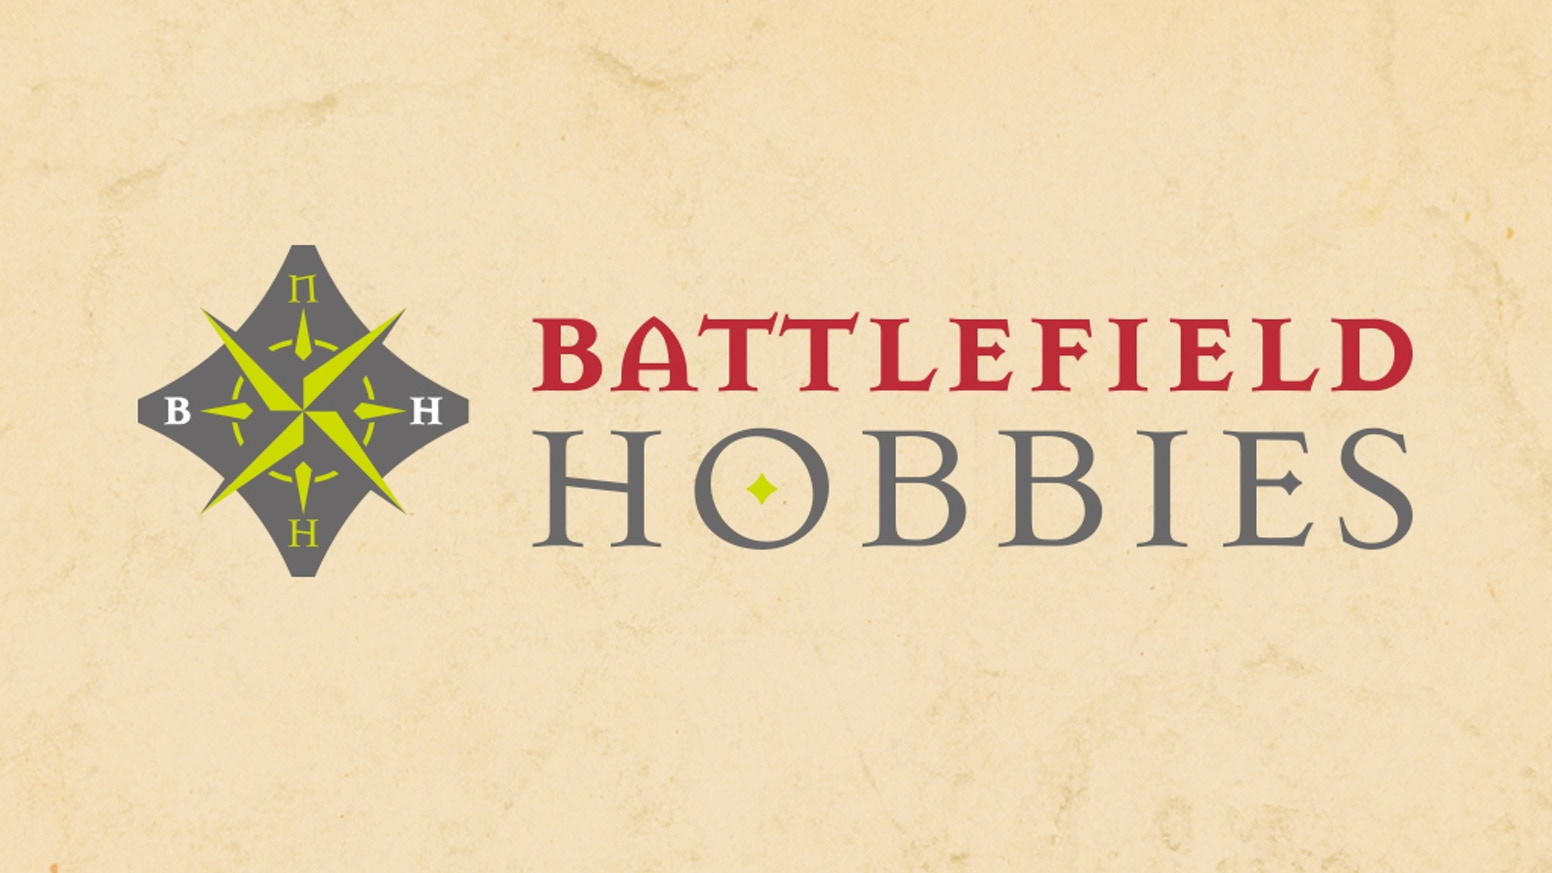 Battlefield Hobbies is an accessible and comfortable games venue and retailer located in the centre of the country.